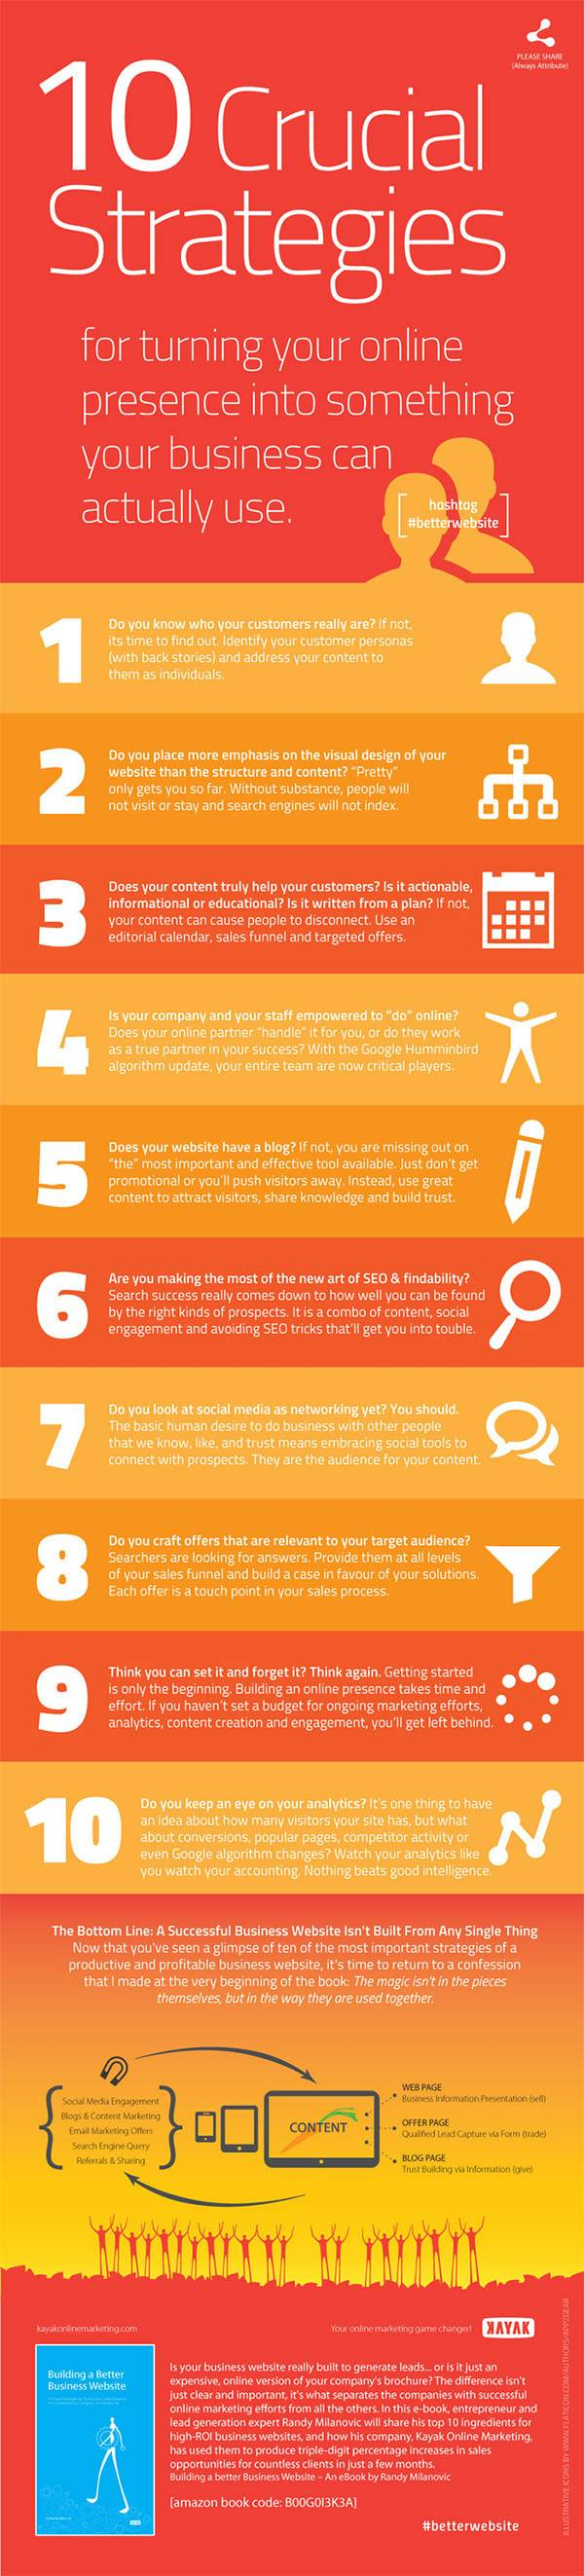 Image showing a infographic with 10 questions about how to build a better website